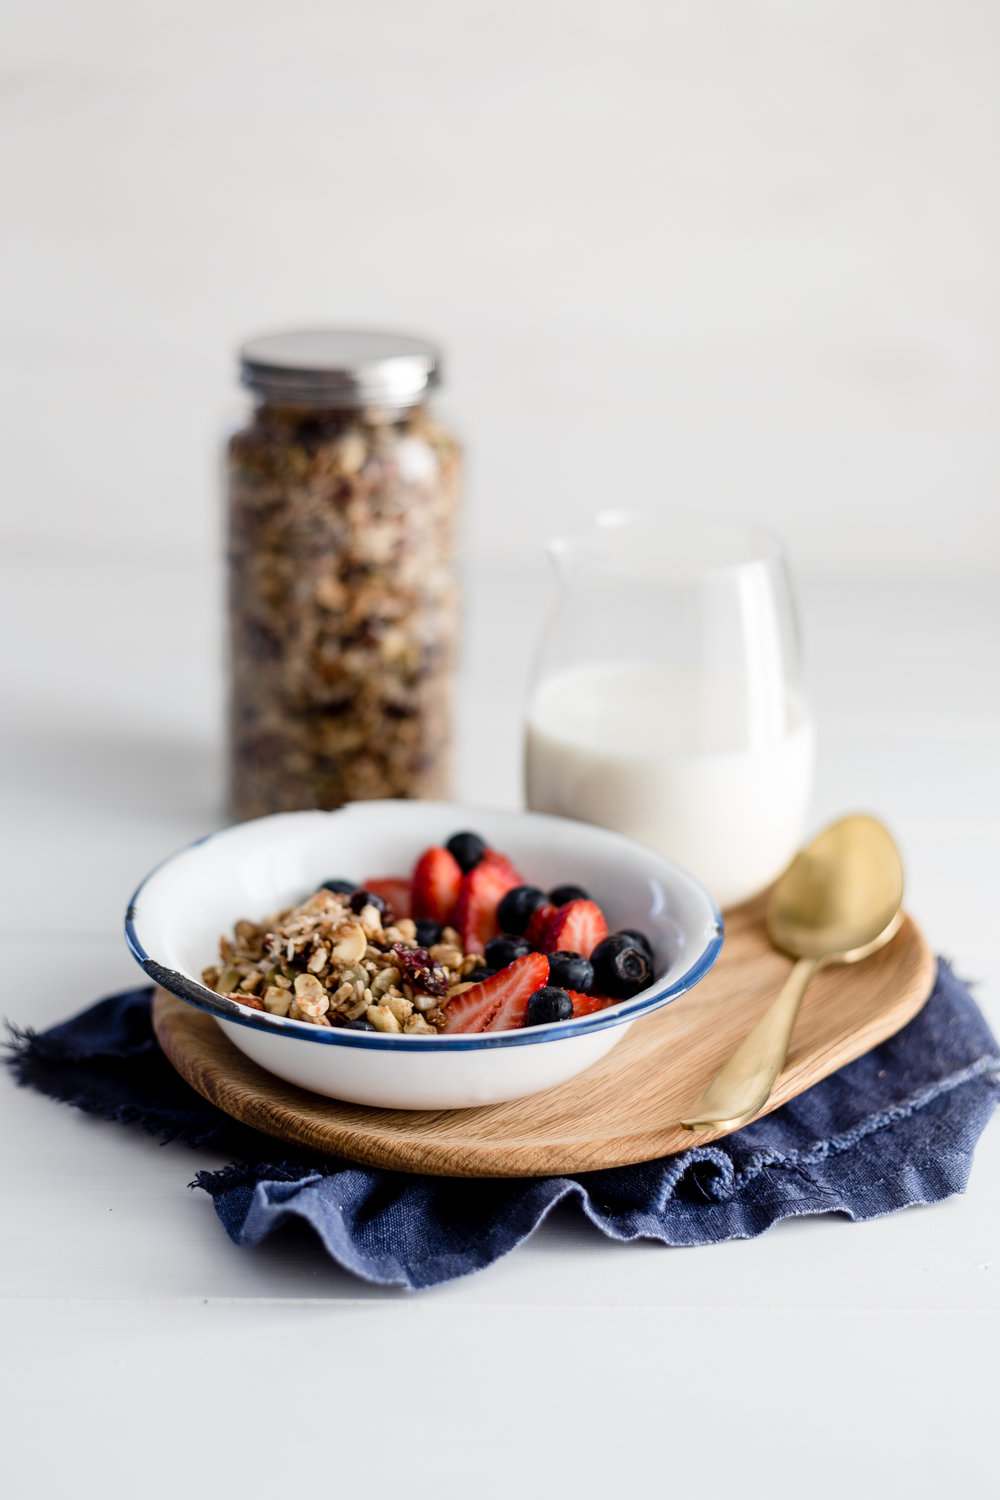 margaretriver-perth-food-photographer-stocked-foods-gluten-free-granola-1